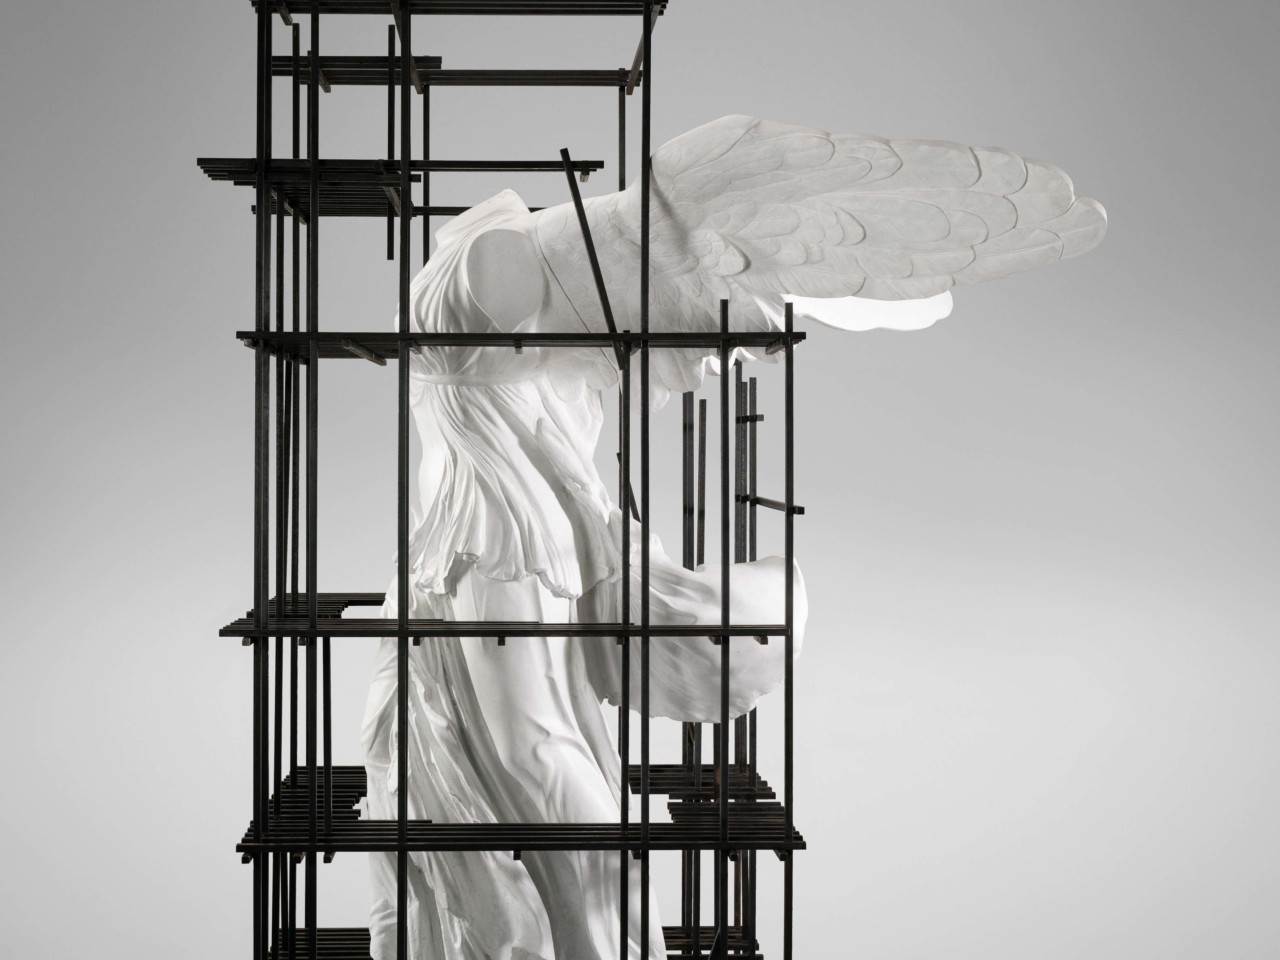 Functional Sculptures Inspired by Antiquity from Sebastian Errazuriz